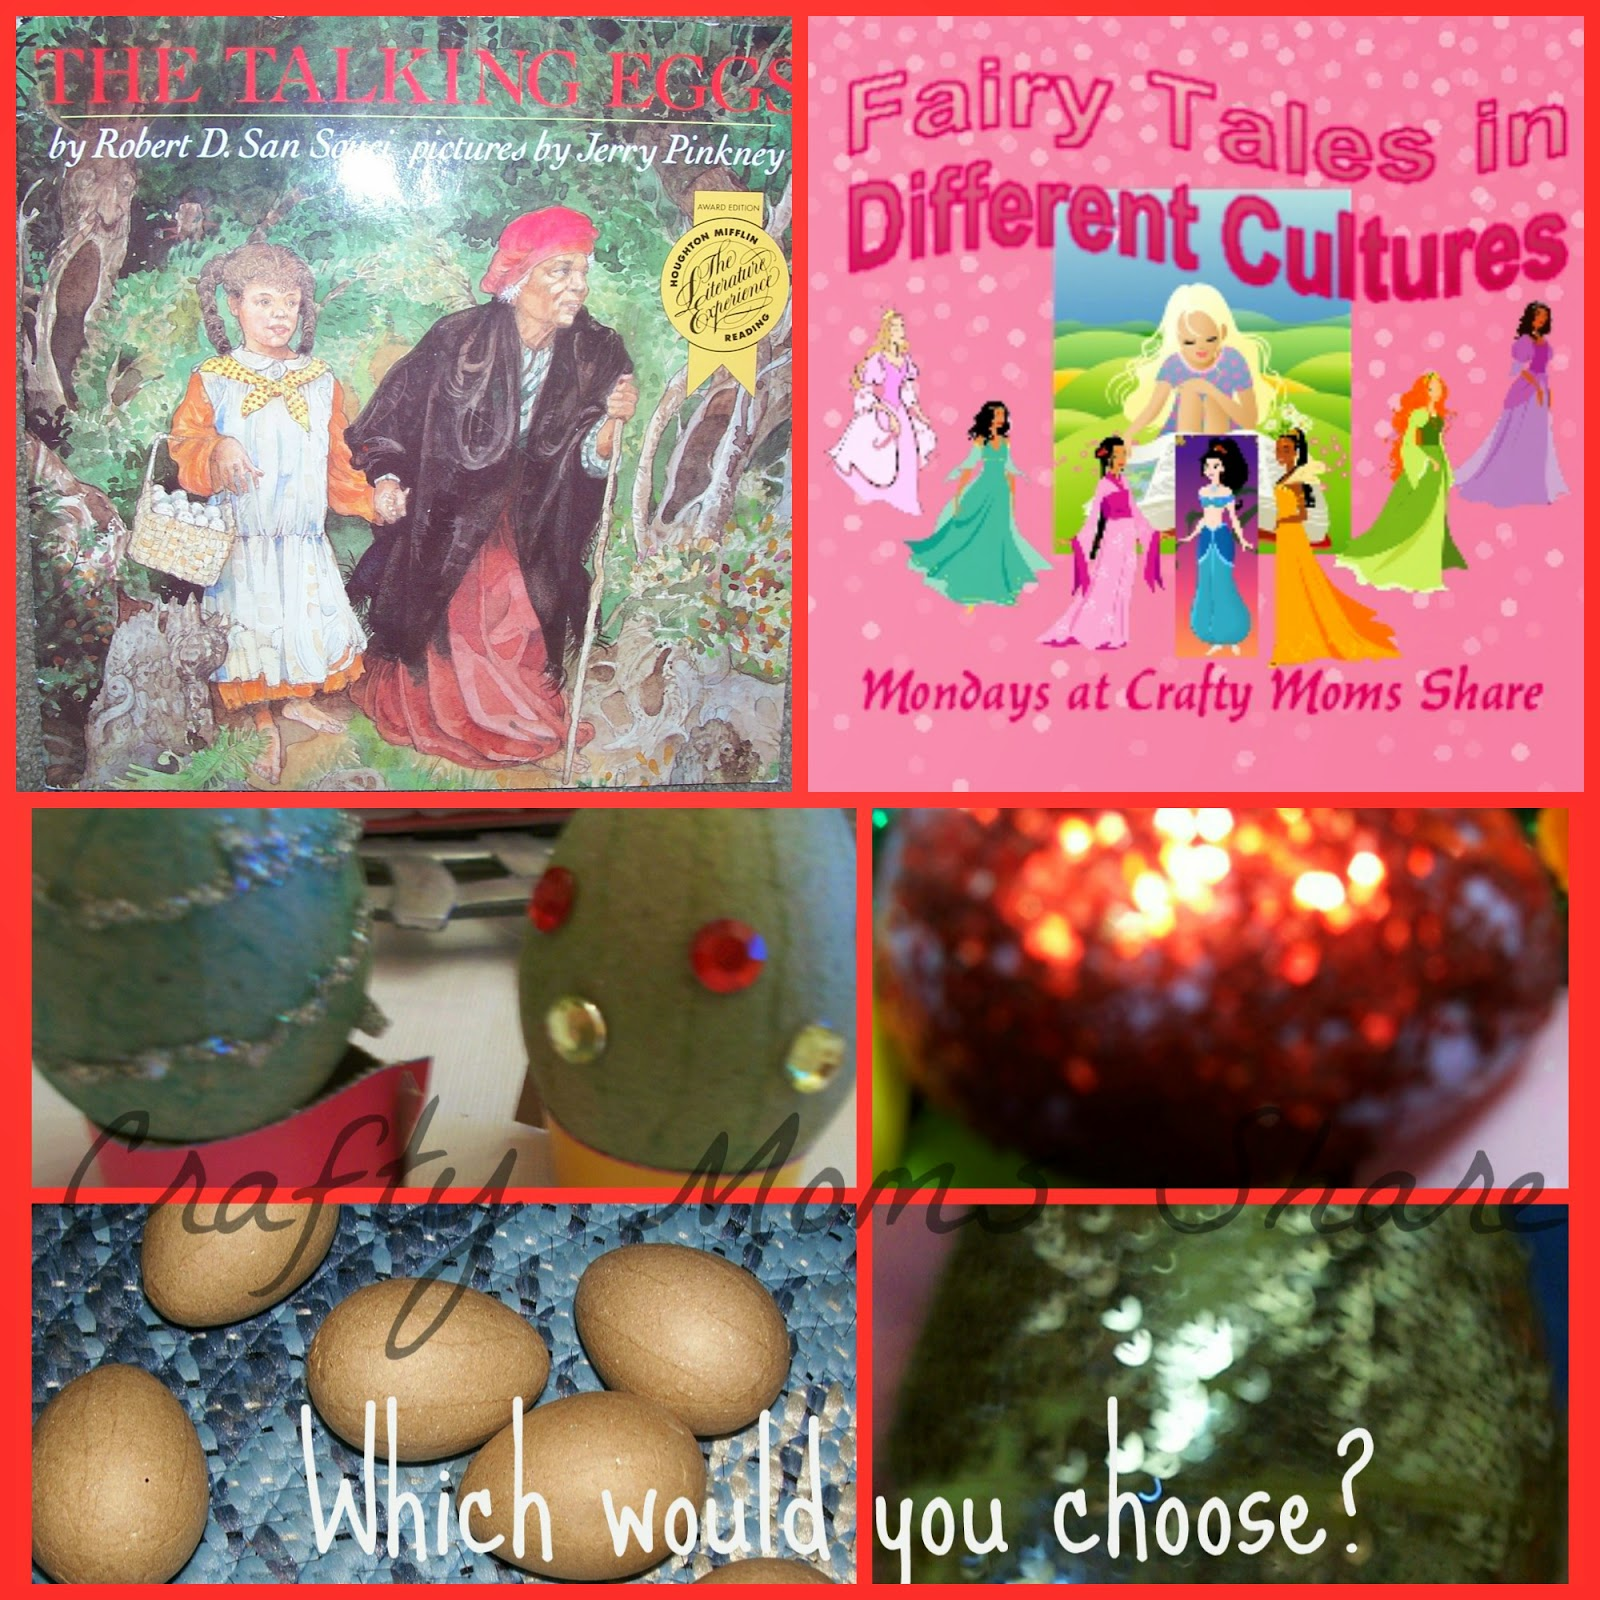 fairy tale culture Fairy tales, a type of short narrative featuring folkloric icons, including gnomes, tolls, elves, goblins, witches, magic, and other forms of enchantment, generally present a belief in supernatural phenomena and may herald underlying moral lessons.